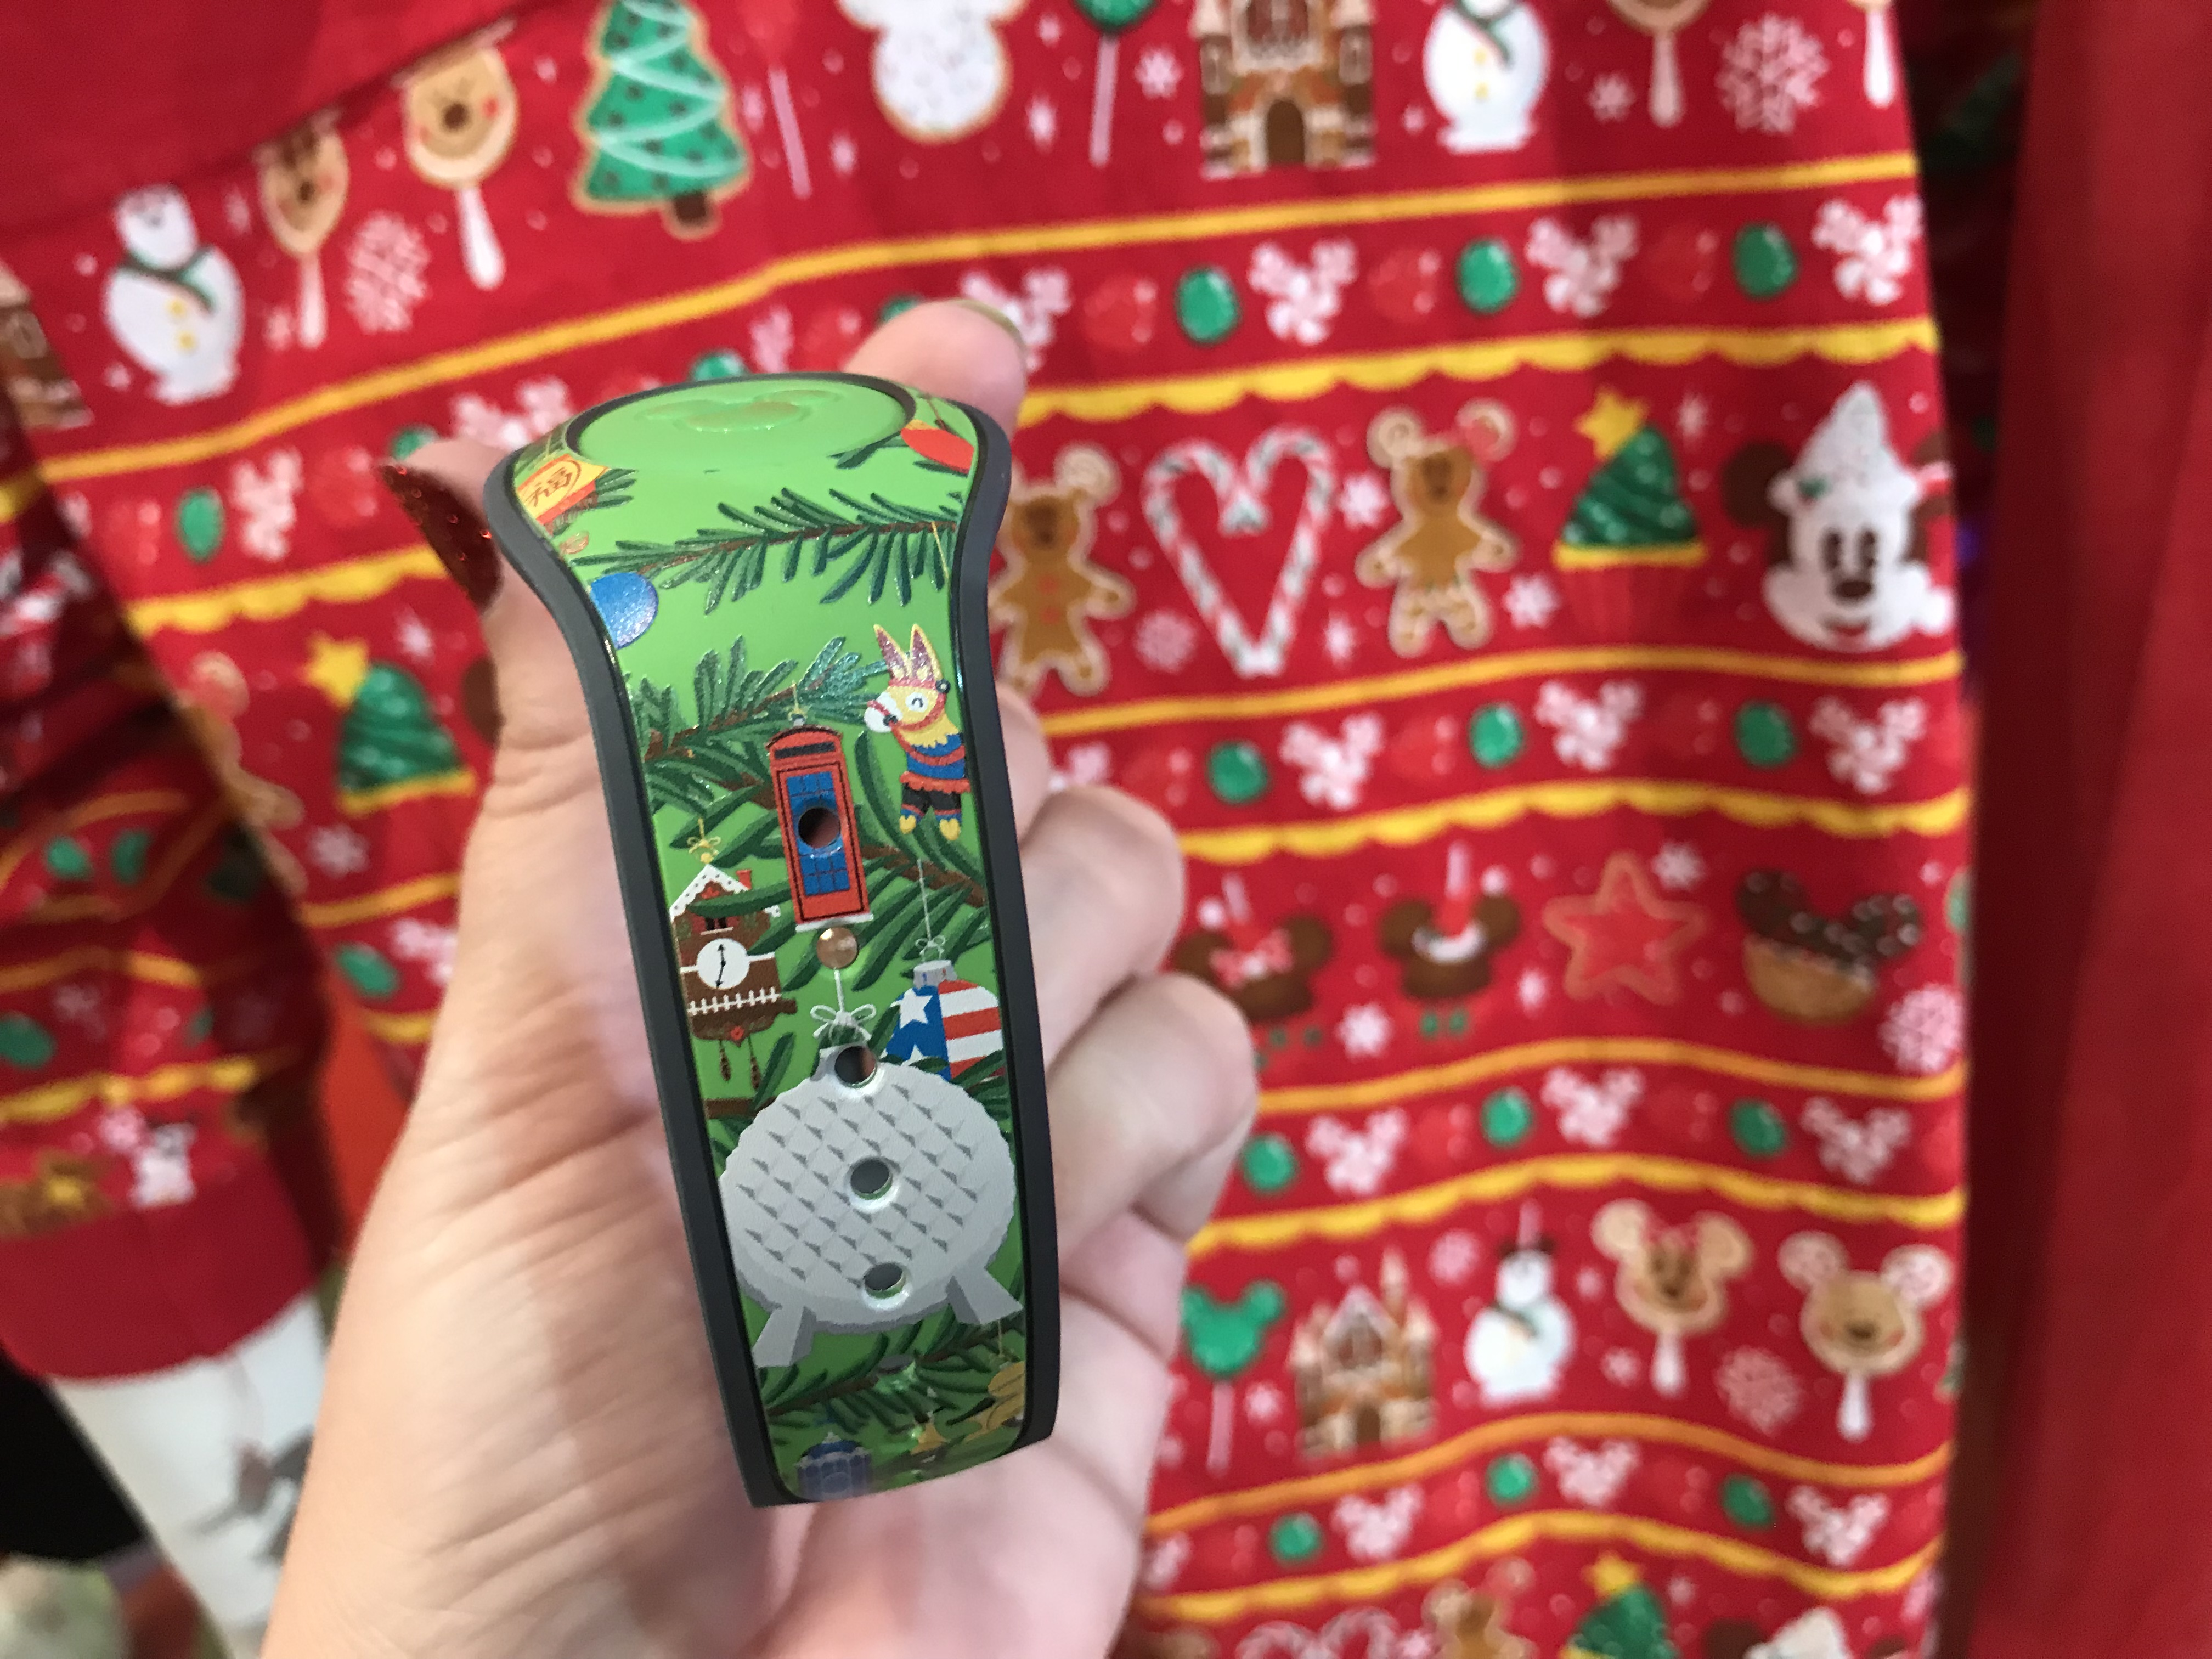 Fabulous Disney Holiday Merchandise Revealed At Disney's Christmas In July 23